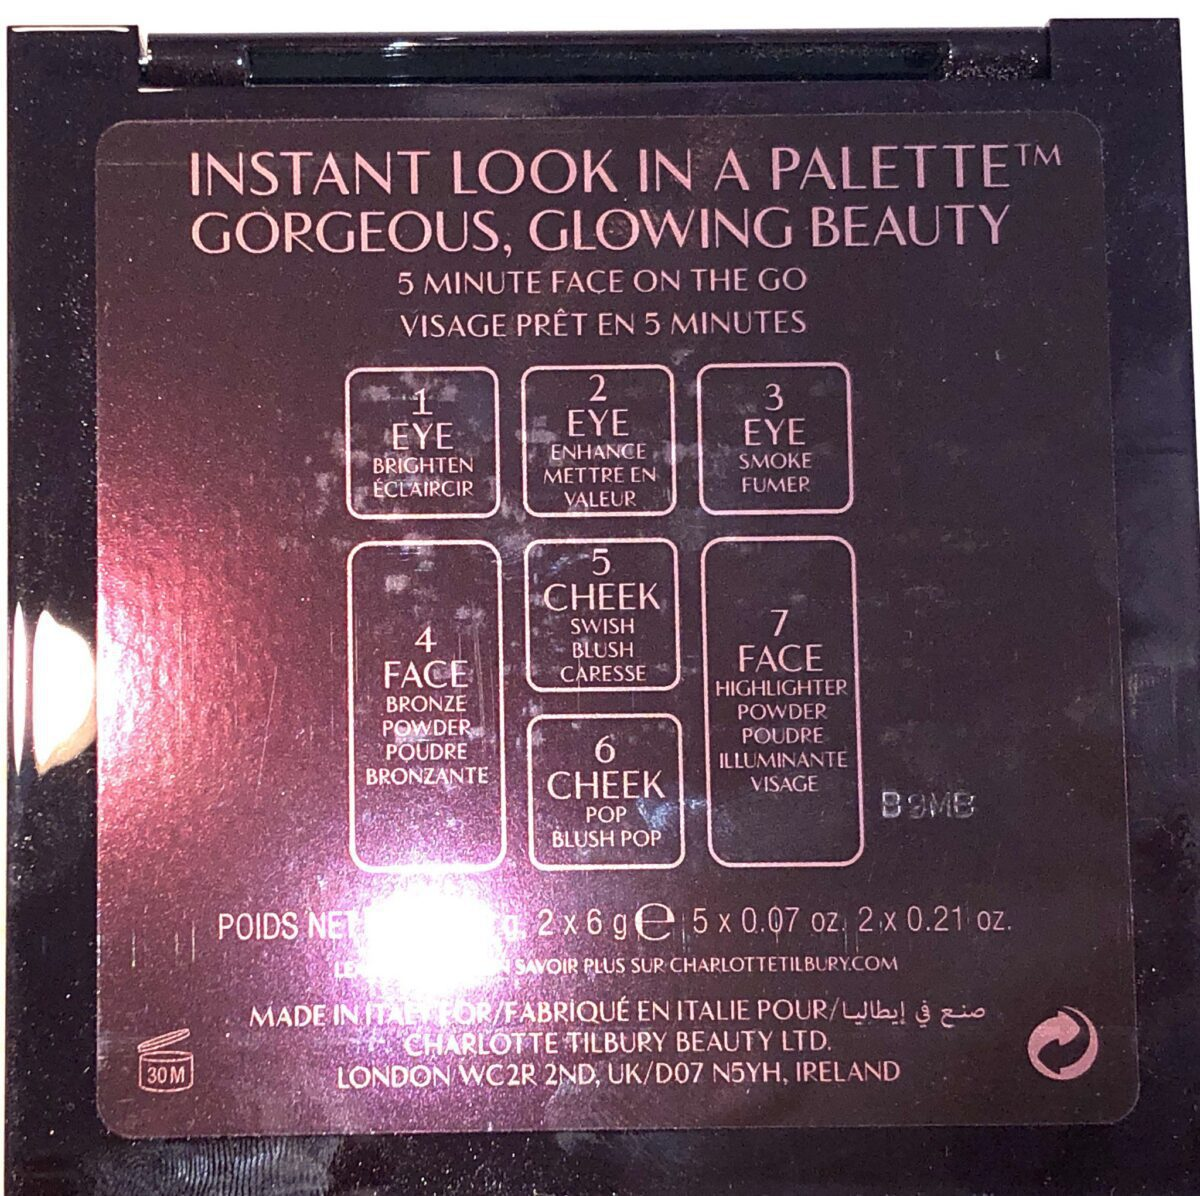 THE GORGEOUS GLOWING INSTANT FACE PALETTE SHADES ARE NUMBERED